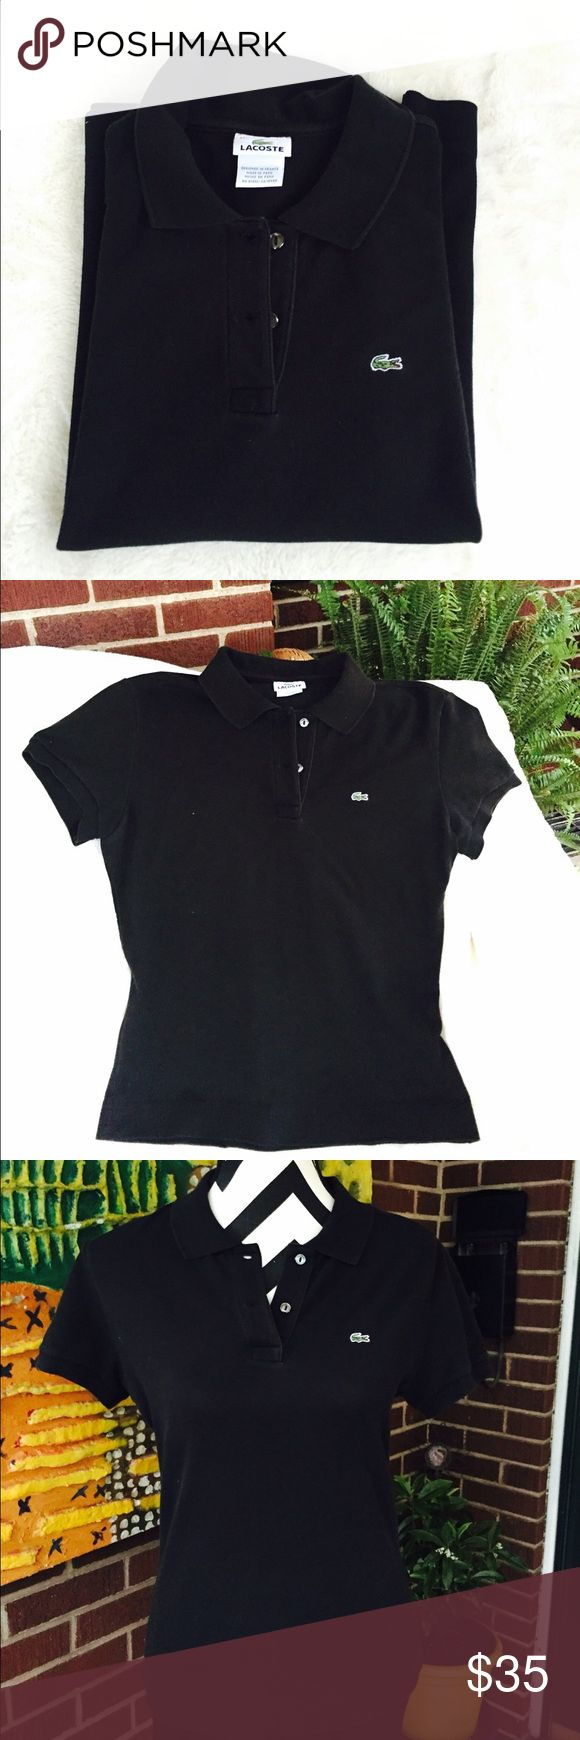 Lacoste Black Polo Shirt (EUR 42- US Large) Classic fit polo shirt black Lacoste. In excellent used condition. I maybe worn this shirt maybe twice. I love the fit of this shirt. Made in Peru and designed in France. This is an authentic Lacoste shirt. Womens size EUR 42; Large US. Lacoste Tops